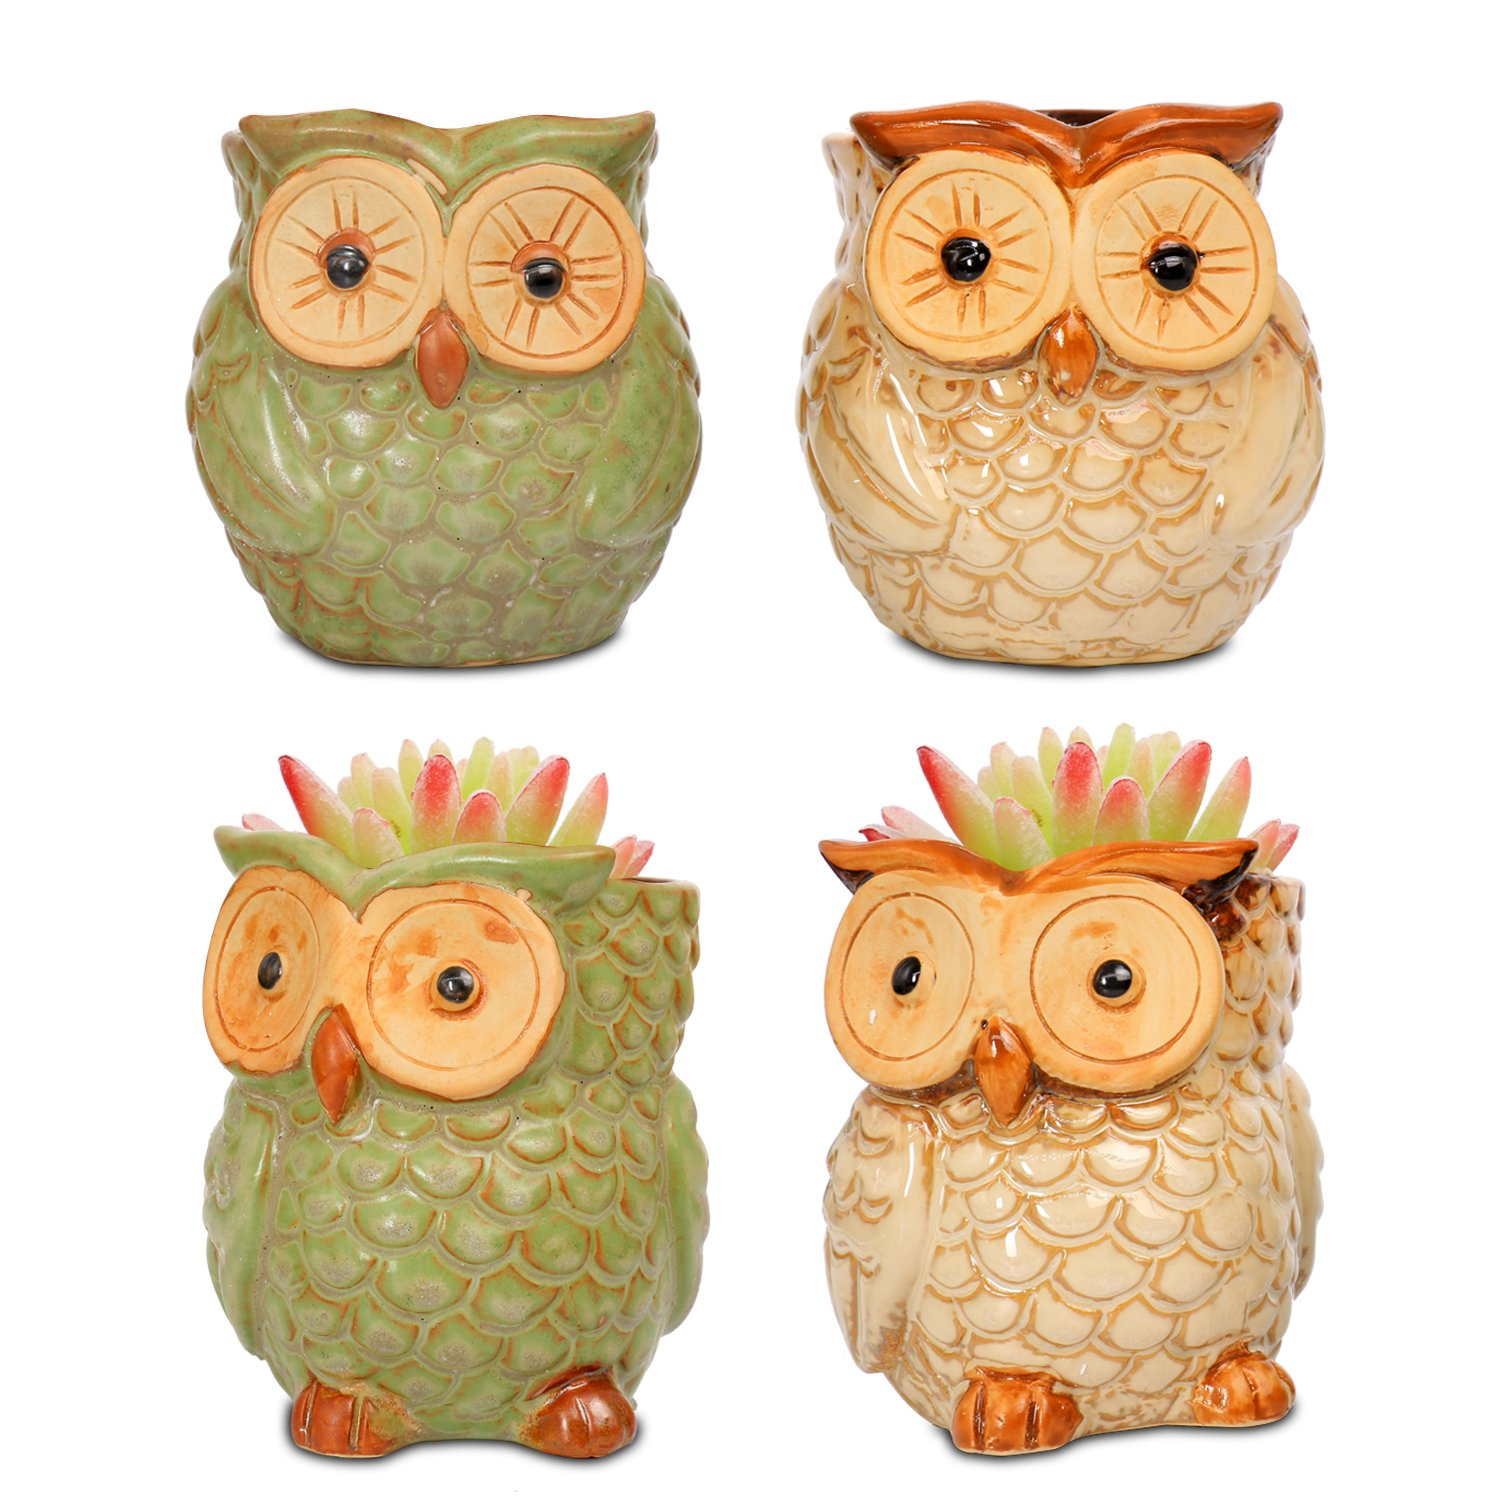 ROSE CREATE 4pcs 3.5 inches Owl Pots Planters (2 Retro Green Owls and 2 Beige Owls)